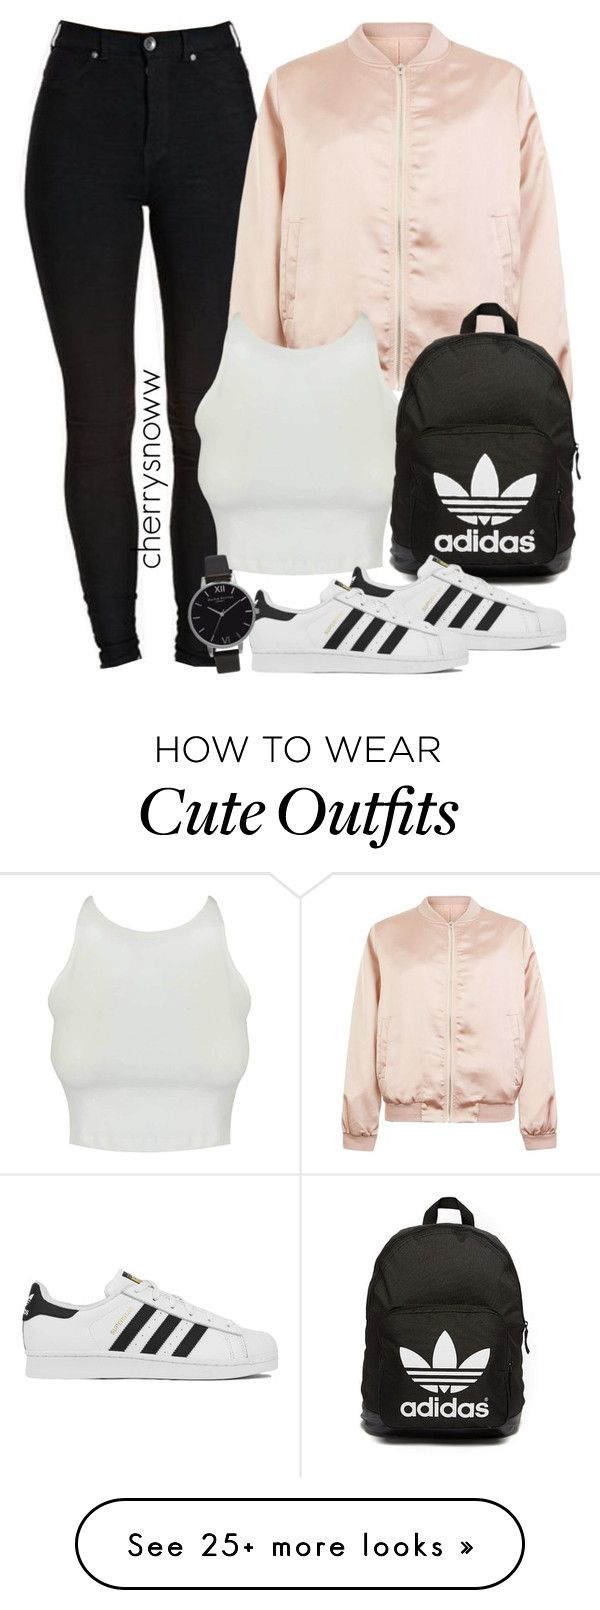 sporty school nude selfy 25+ best ideas about Cute Sporty Outfits on Pinterest | Cute shorts, Cute  gym outfits and Sporty clothes